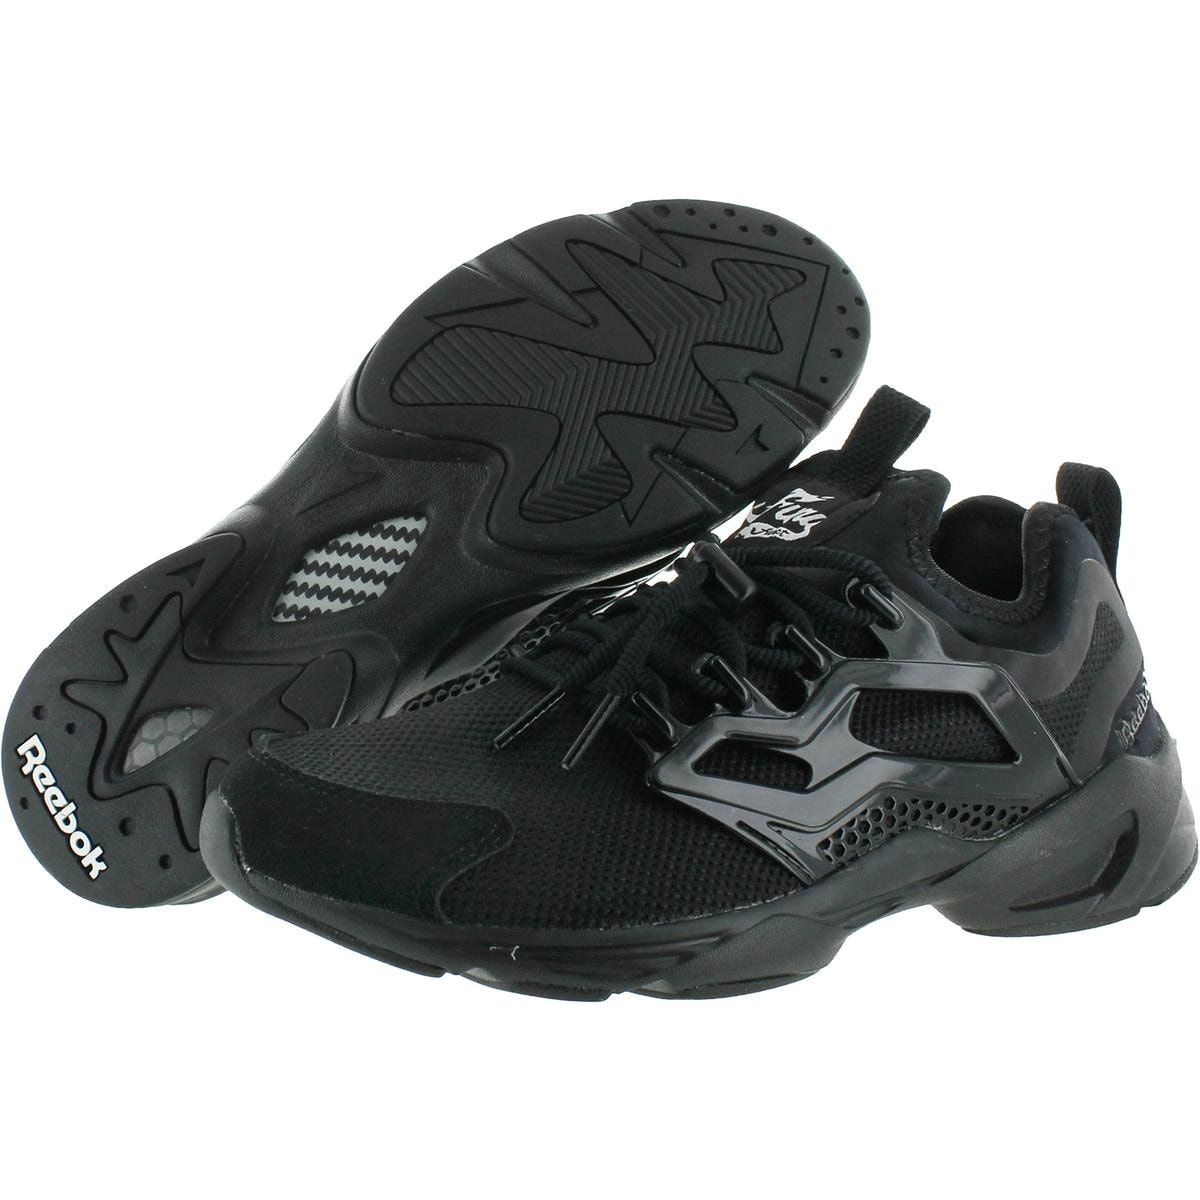 85f013dcc38 Shop Reebok Womens Fury Adapt Fashion Sneakers Hexalite Ortholite - Free  Shipping On Orders Over  45 - Overstock - 21942365